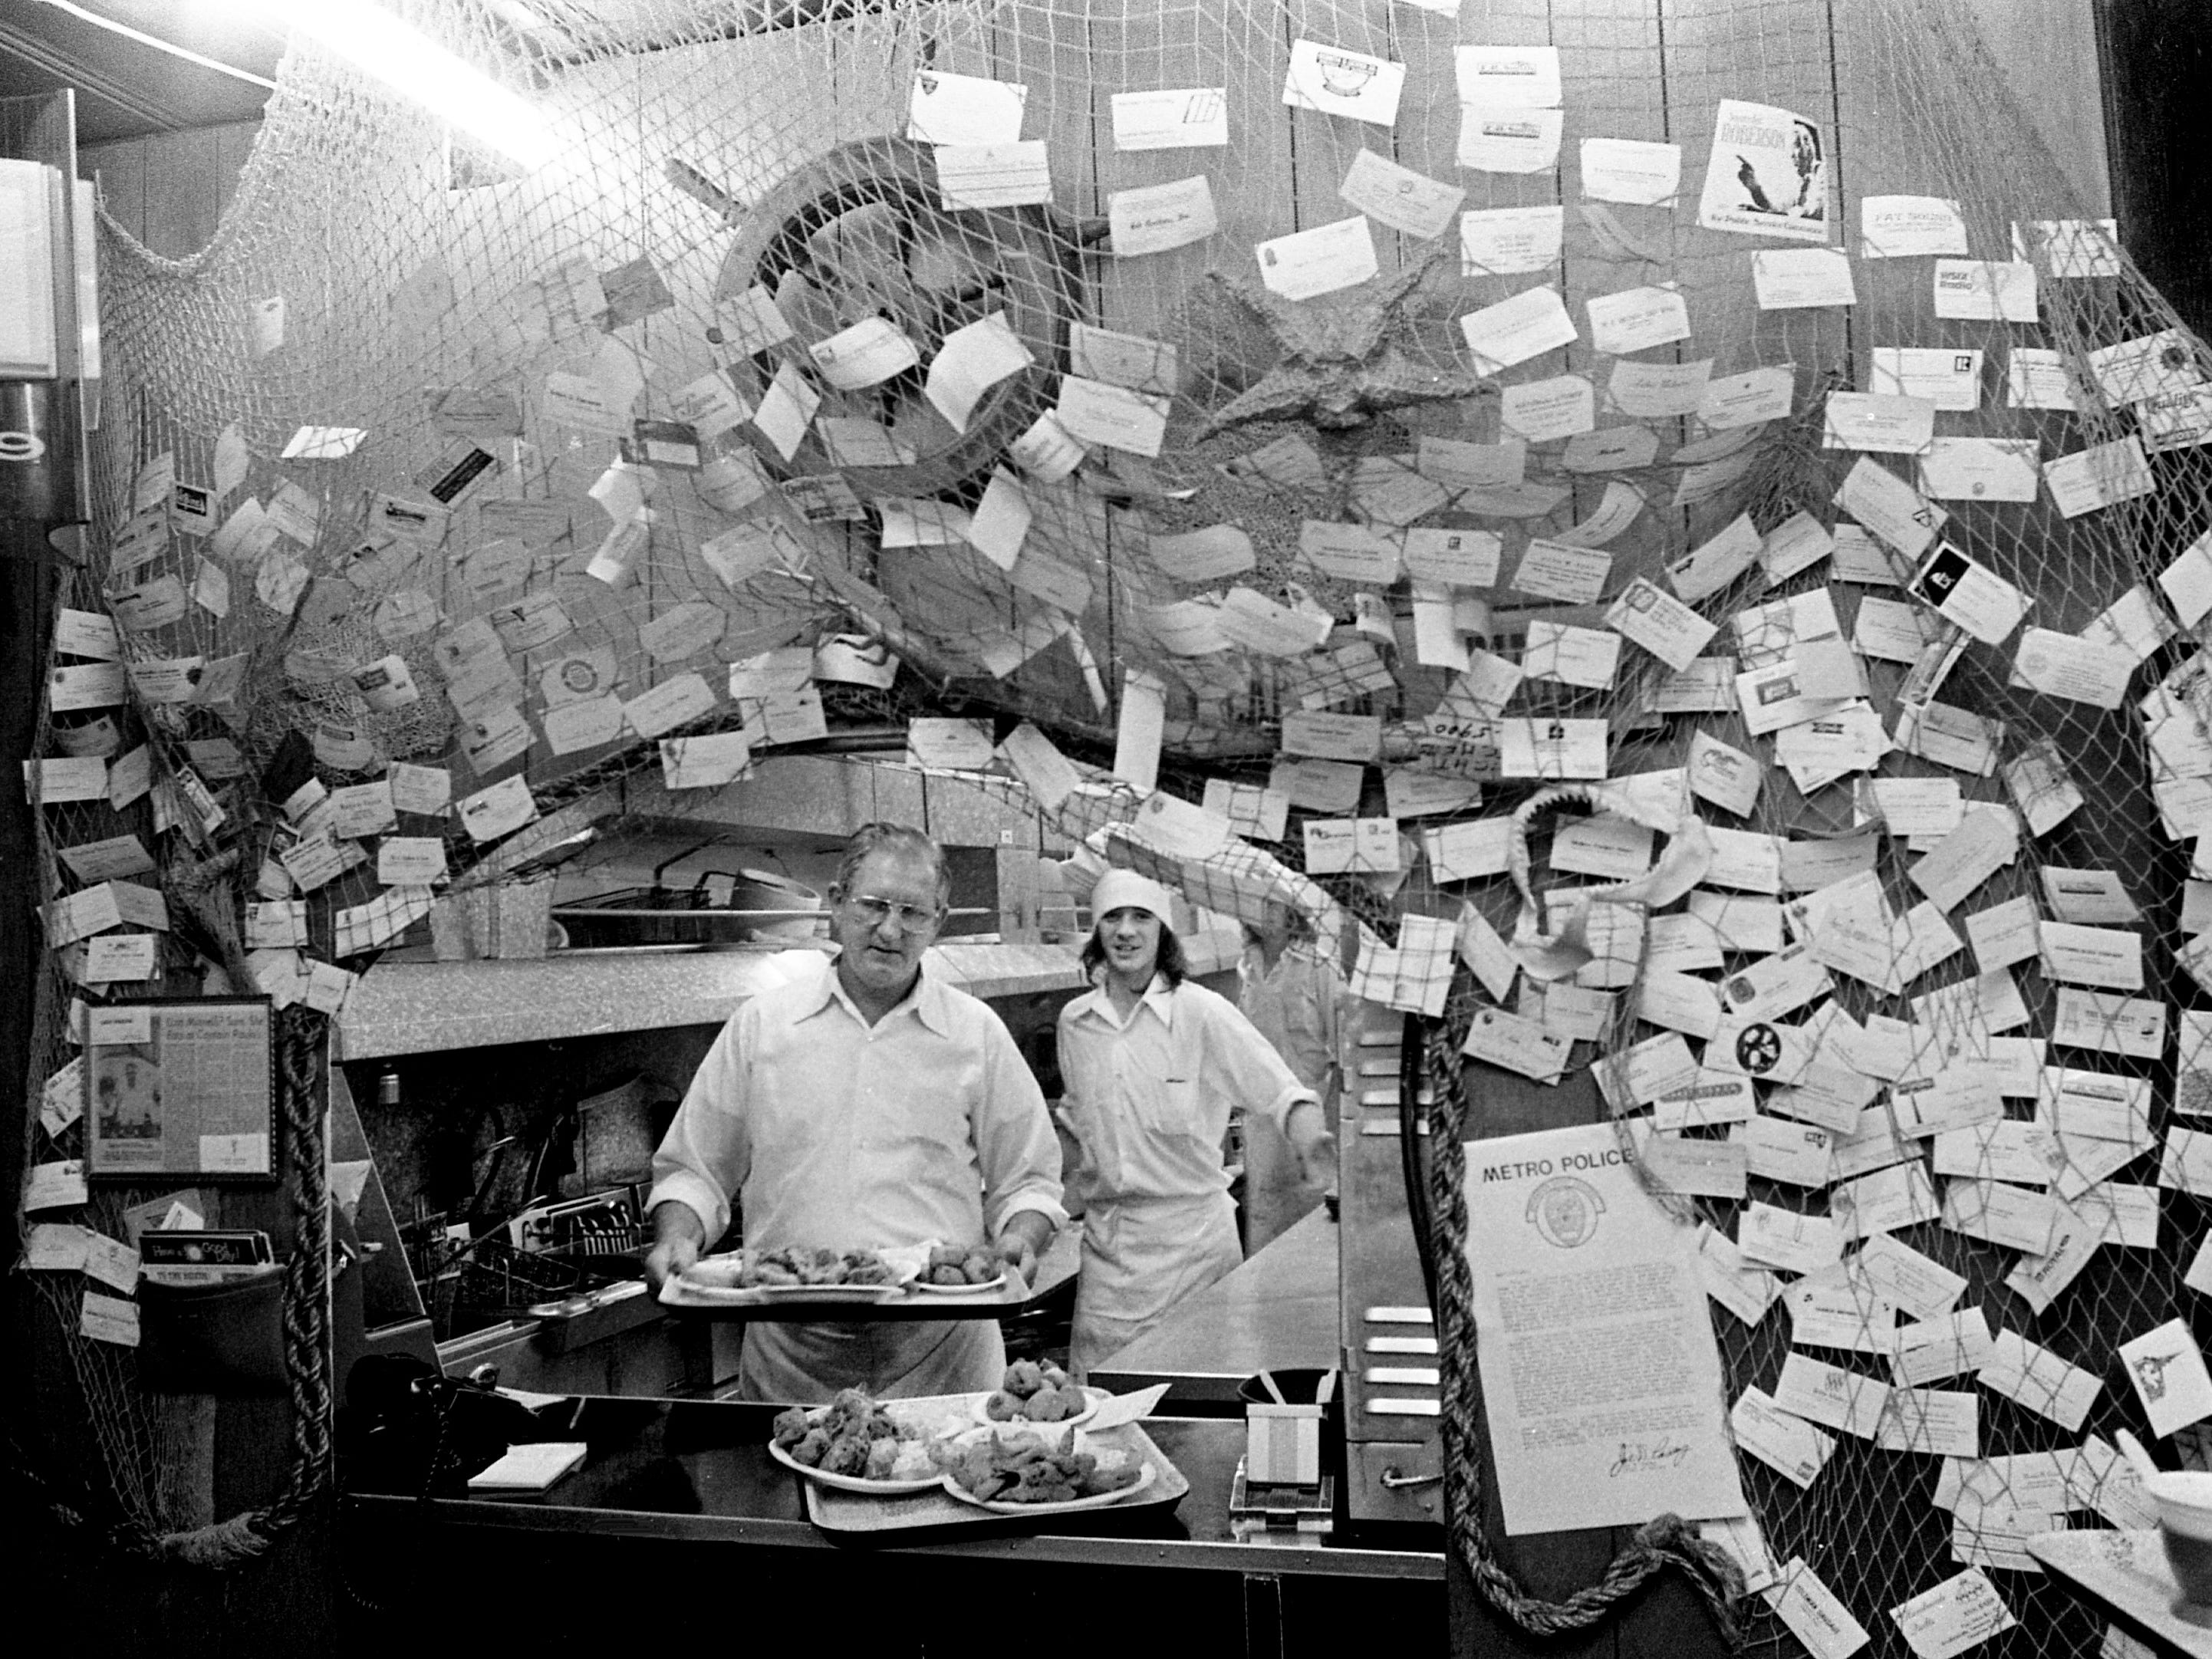 The Captain, Paul Vandenbergh, front, serves up seafood Jan. 16, 1975 at his Captain Paulo's restaurant tucked into a cluster of shops at the corner of Riverside Drive, east of the river off Gallatin Road. The restaurant squeezes up to 1,200 hungry, devoted customers into its three small rooms each day.